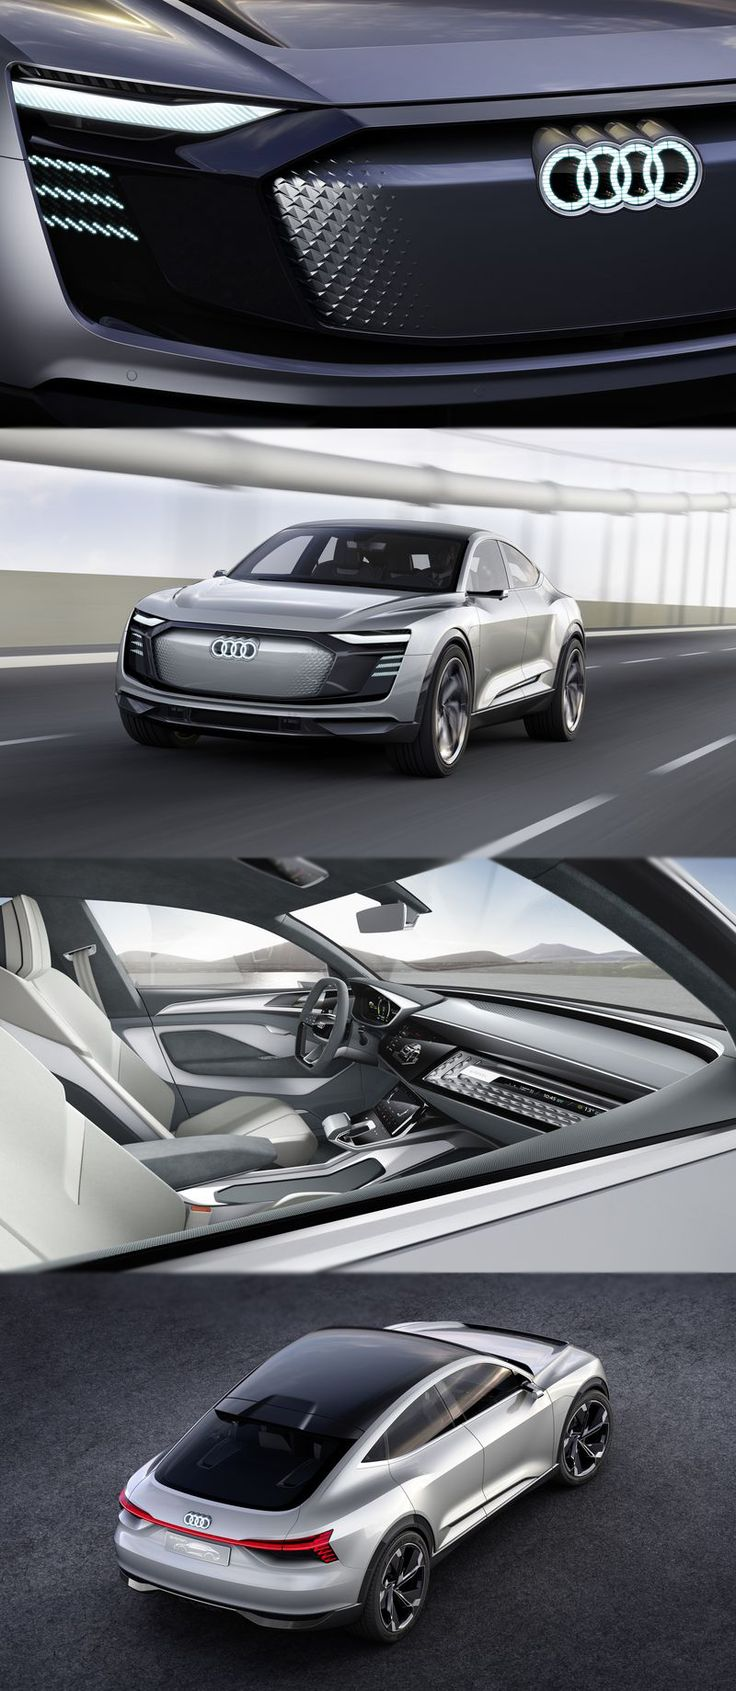 Audi s new electric car for more deatil http germancarsenginesrepairservice blogspot